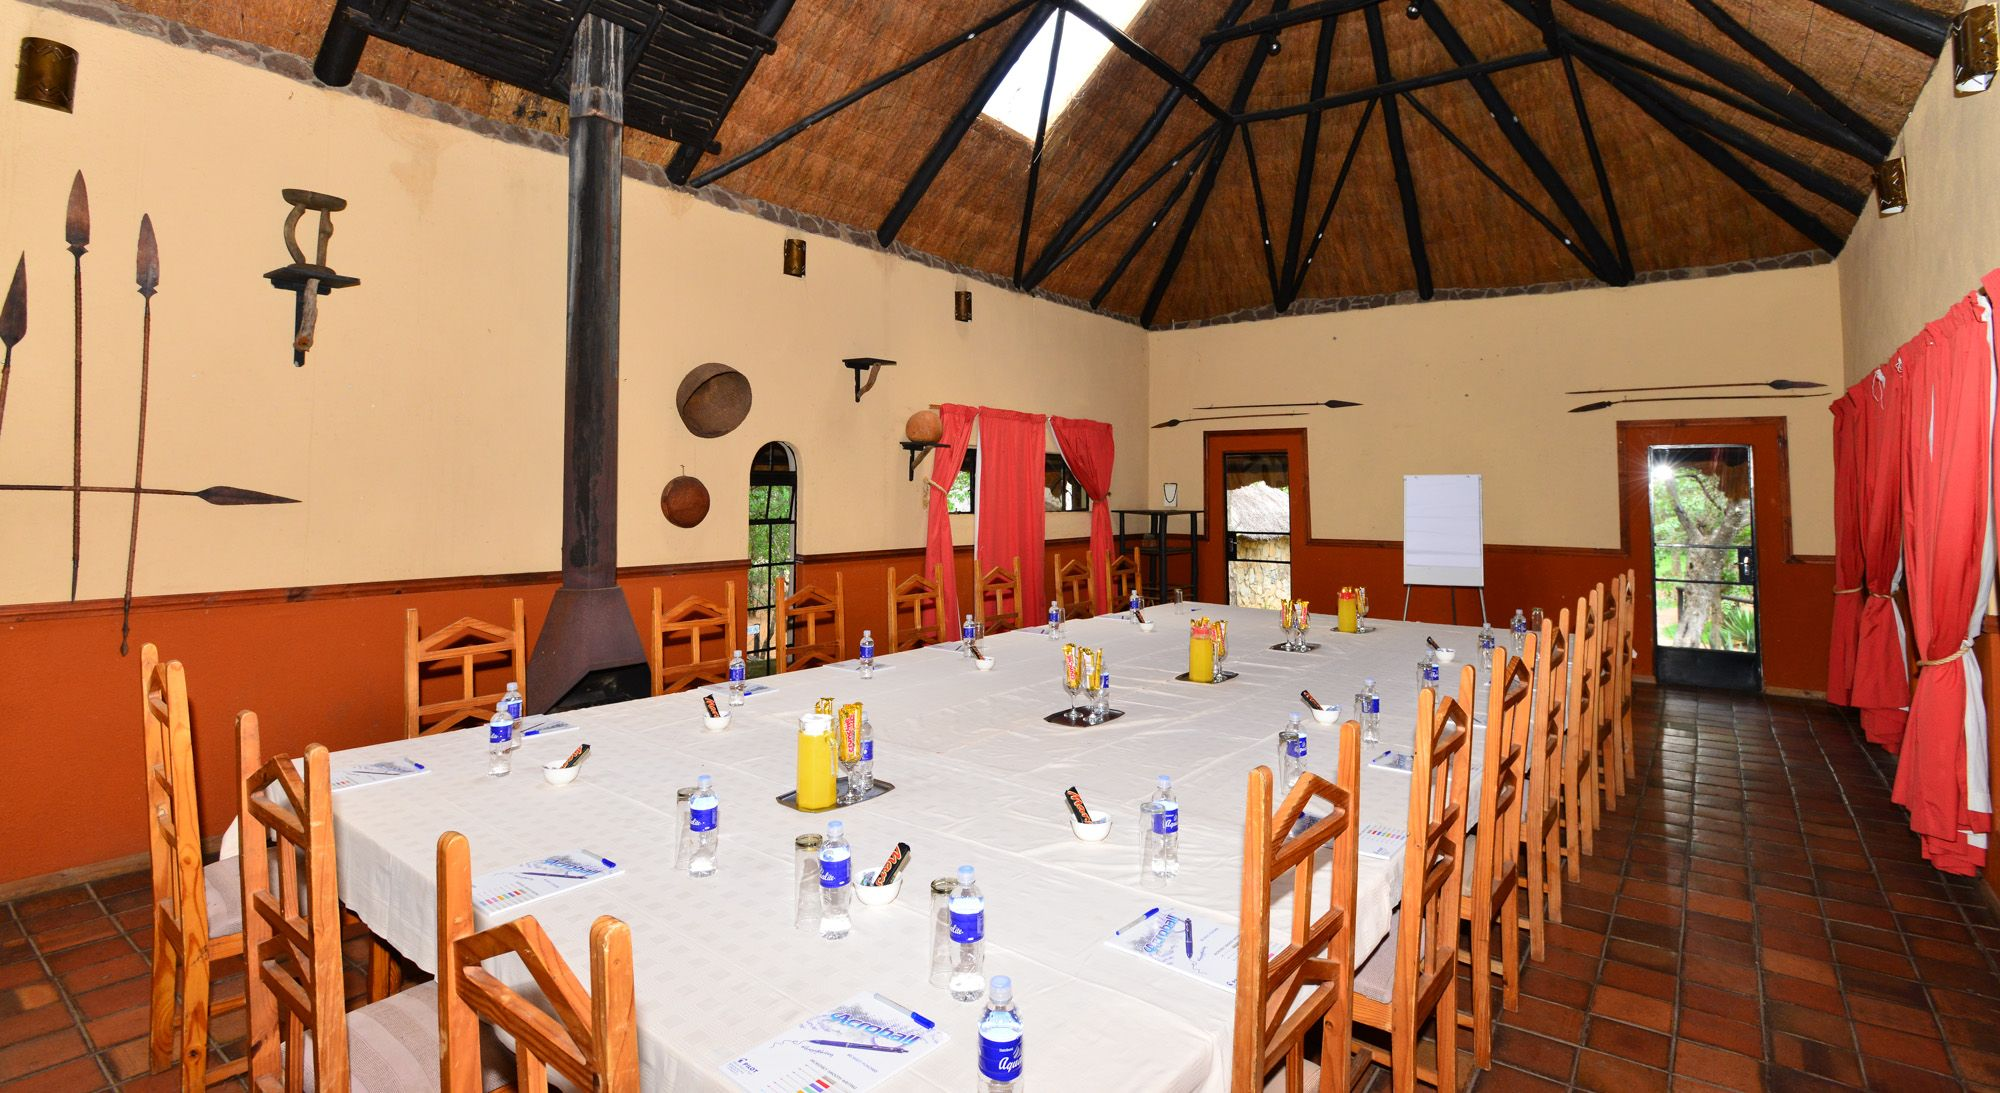 Wedding decor images zimbabwe  Meetings at Matobo Hills Lodge are never boring  Events  Pinterest